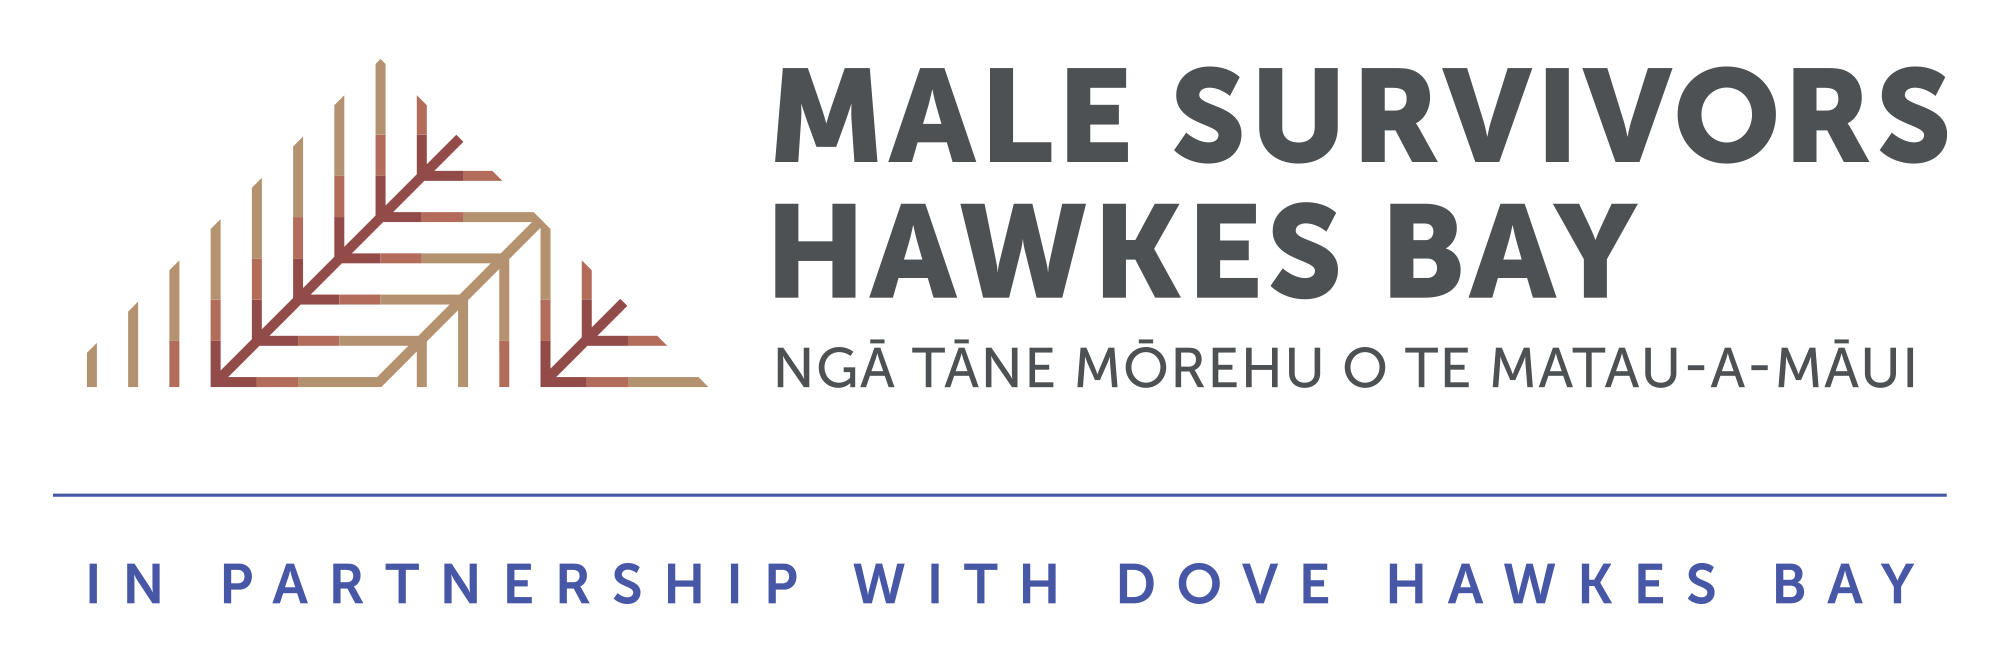 Male Survivors Hawkes Bay